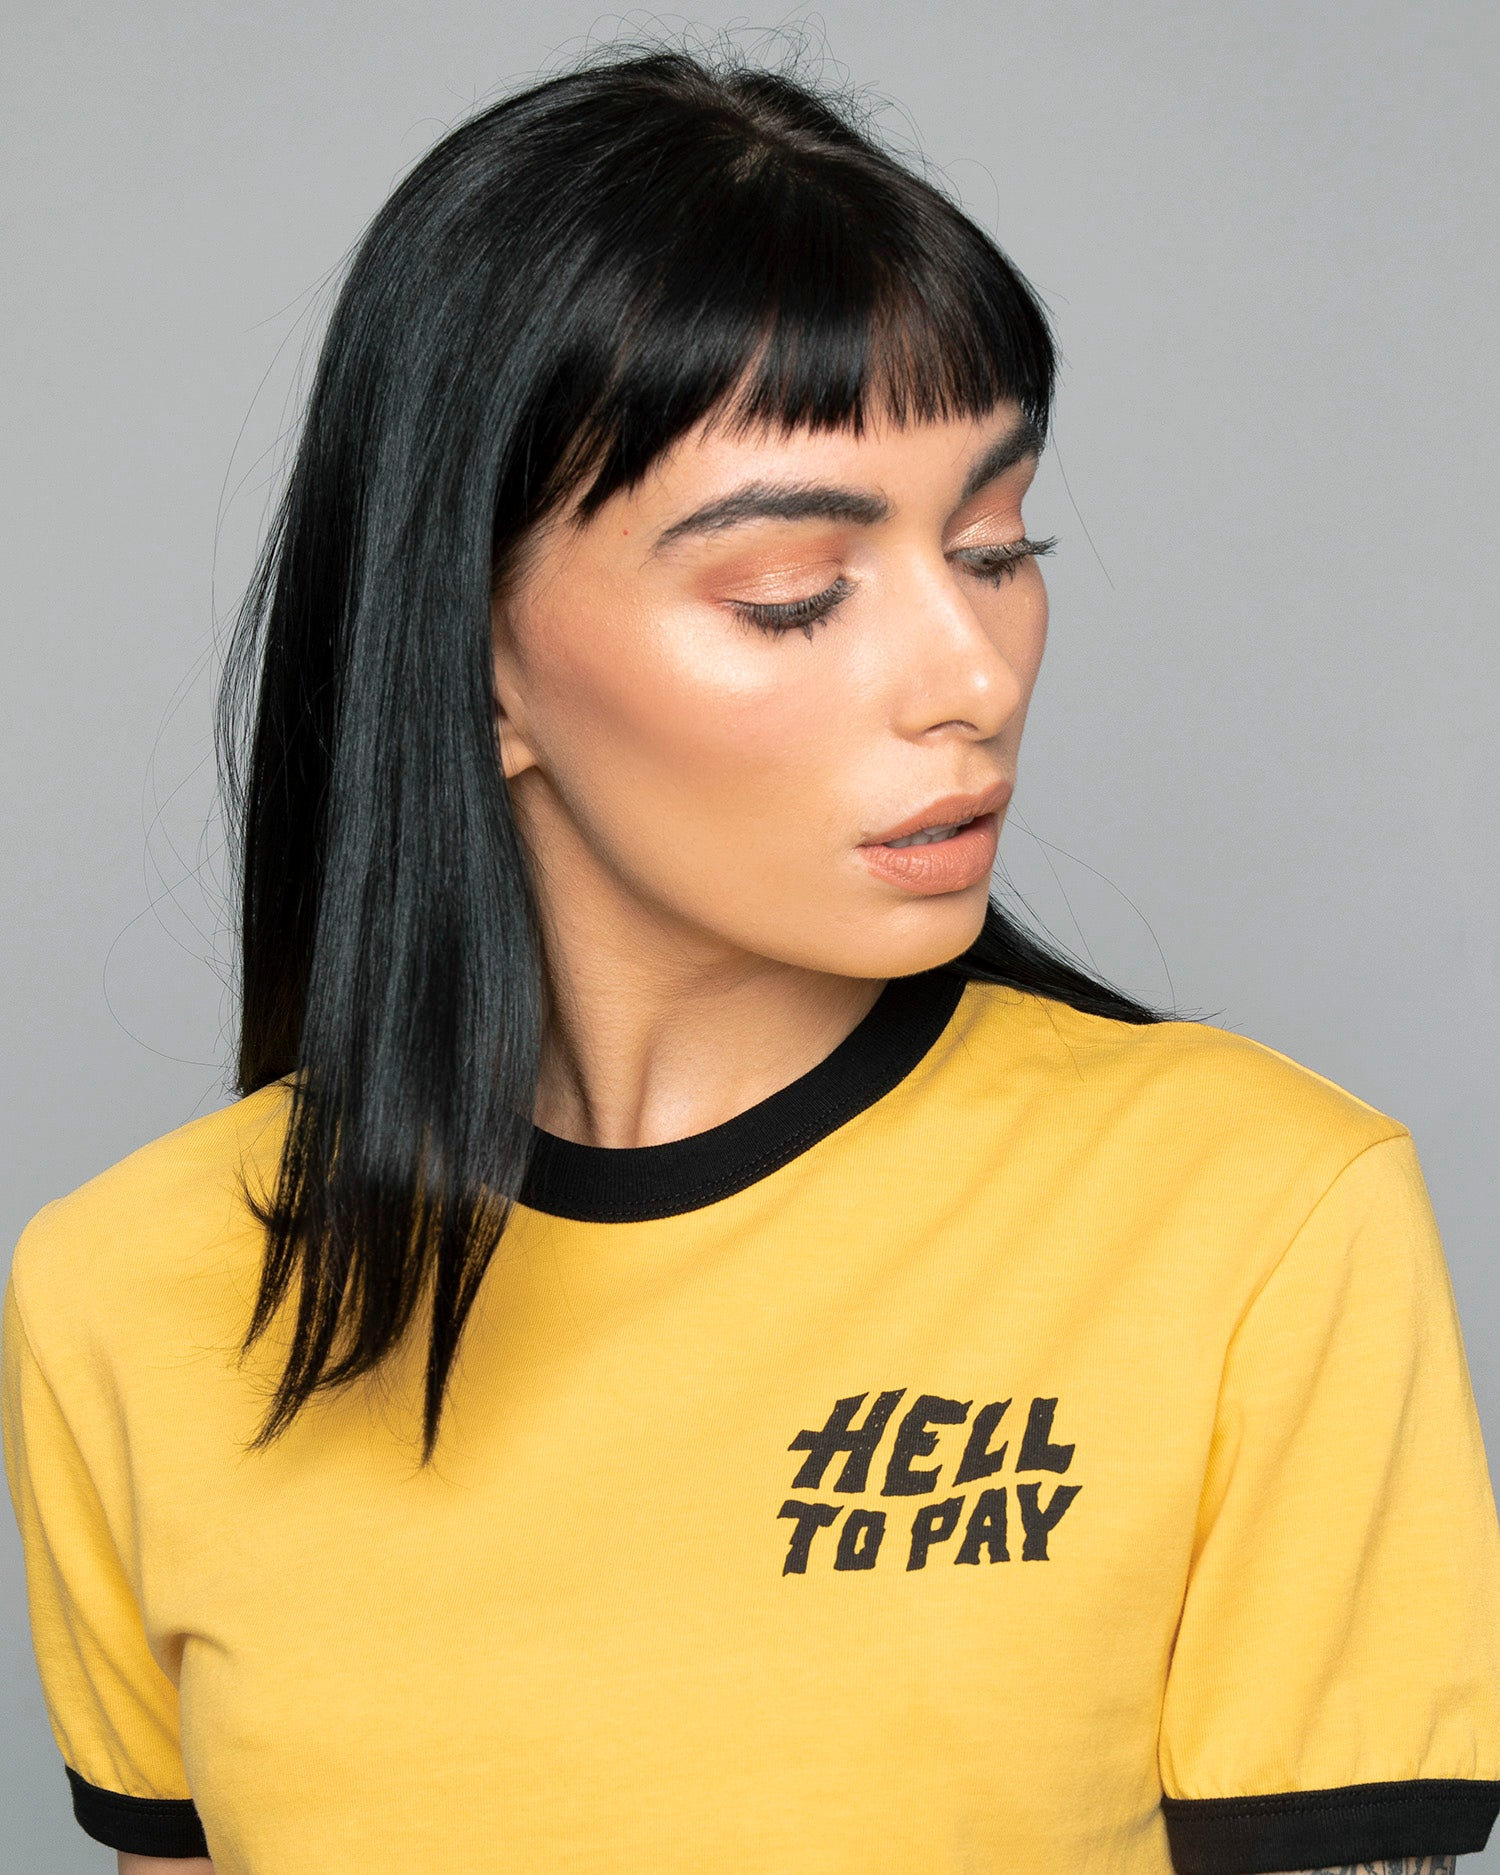 Womens Hell to Pay Graphic Yellow Ringer T-Shirt